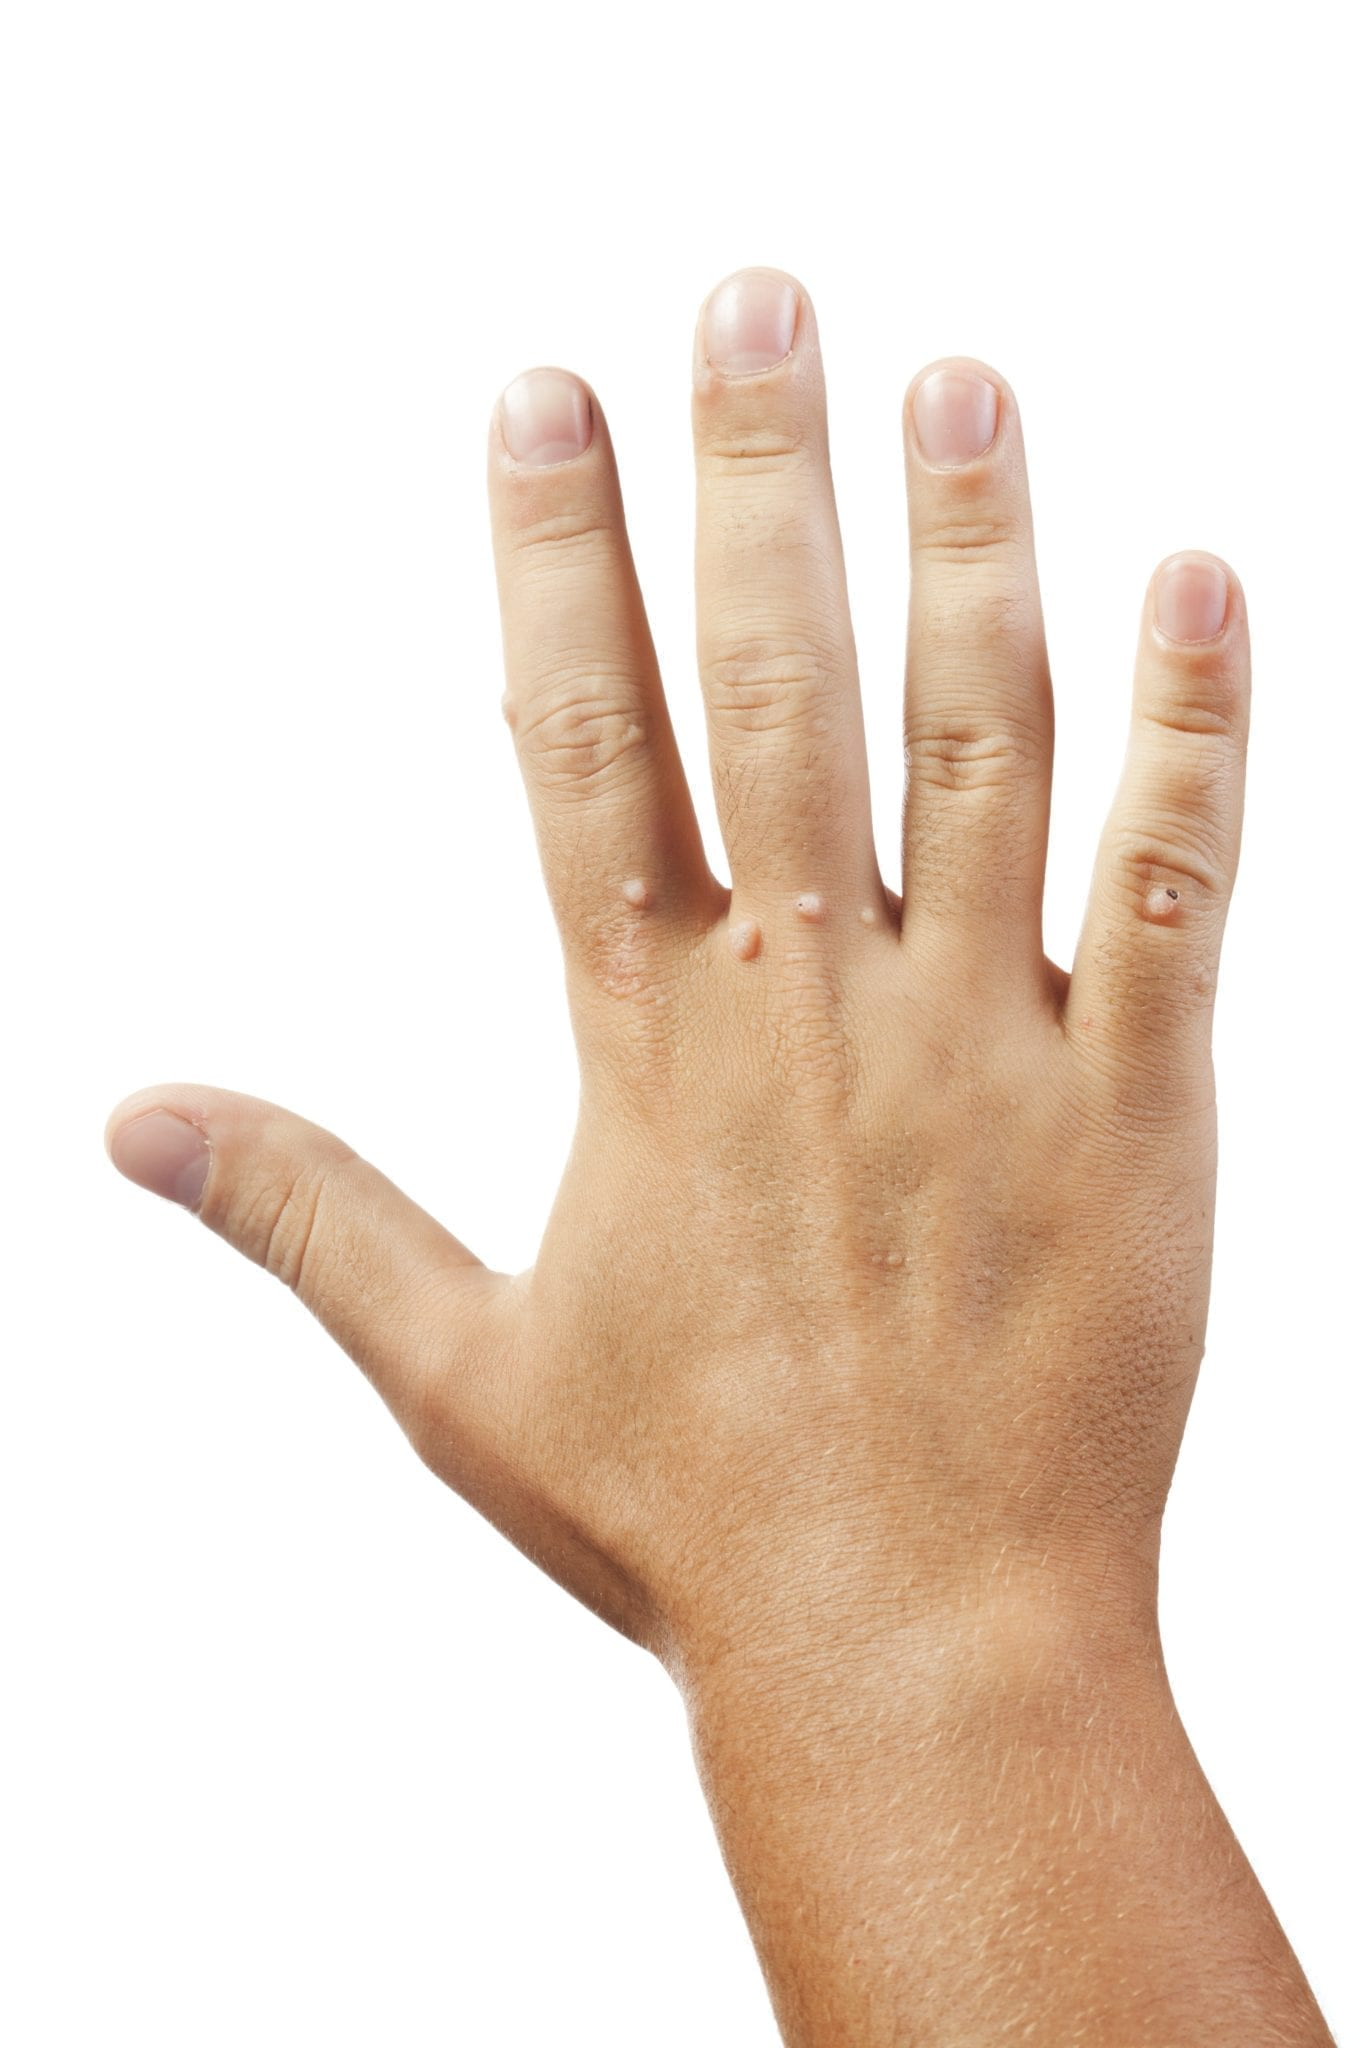 Warts on hands types - triplus.ro